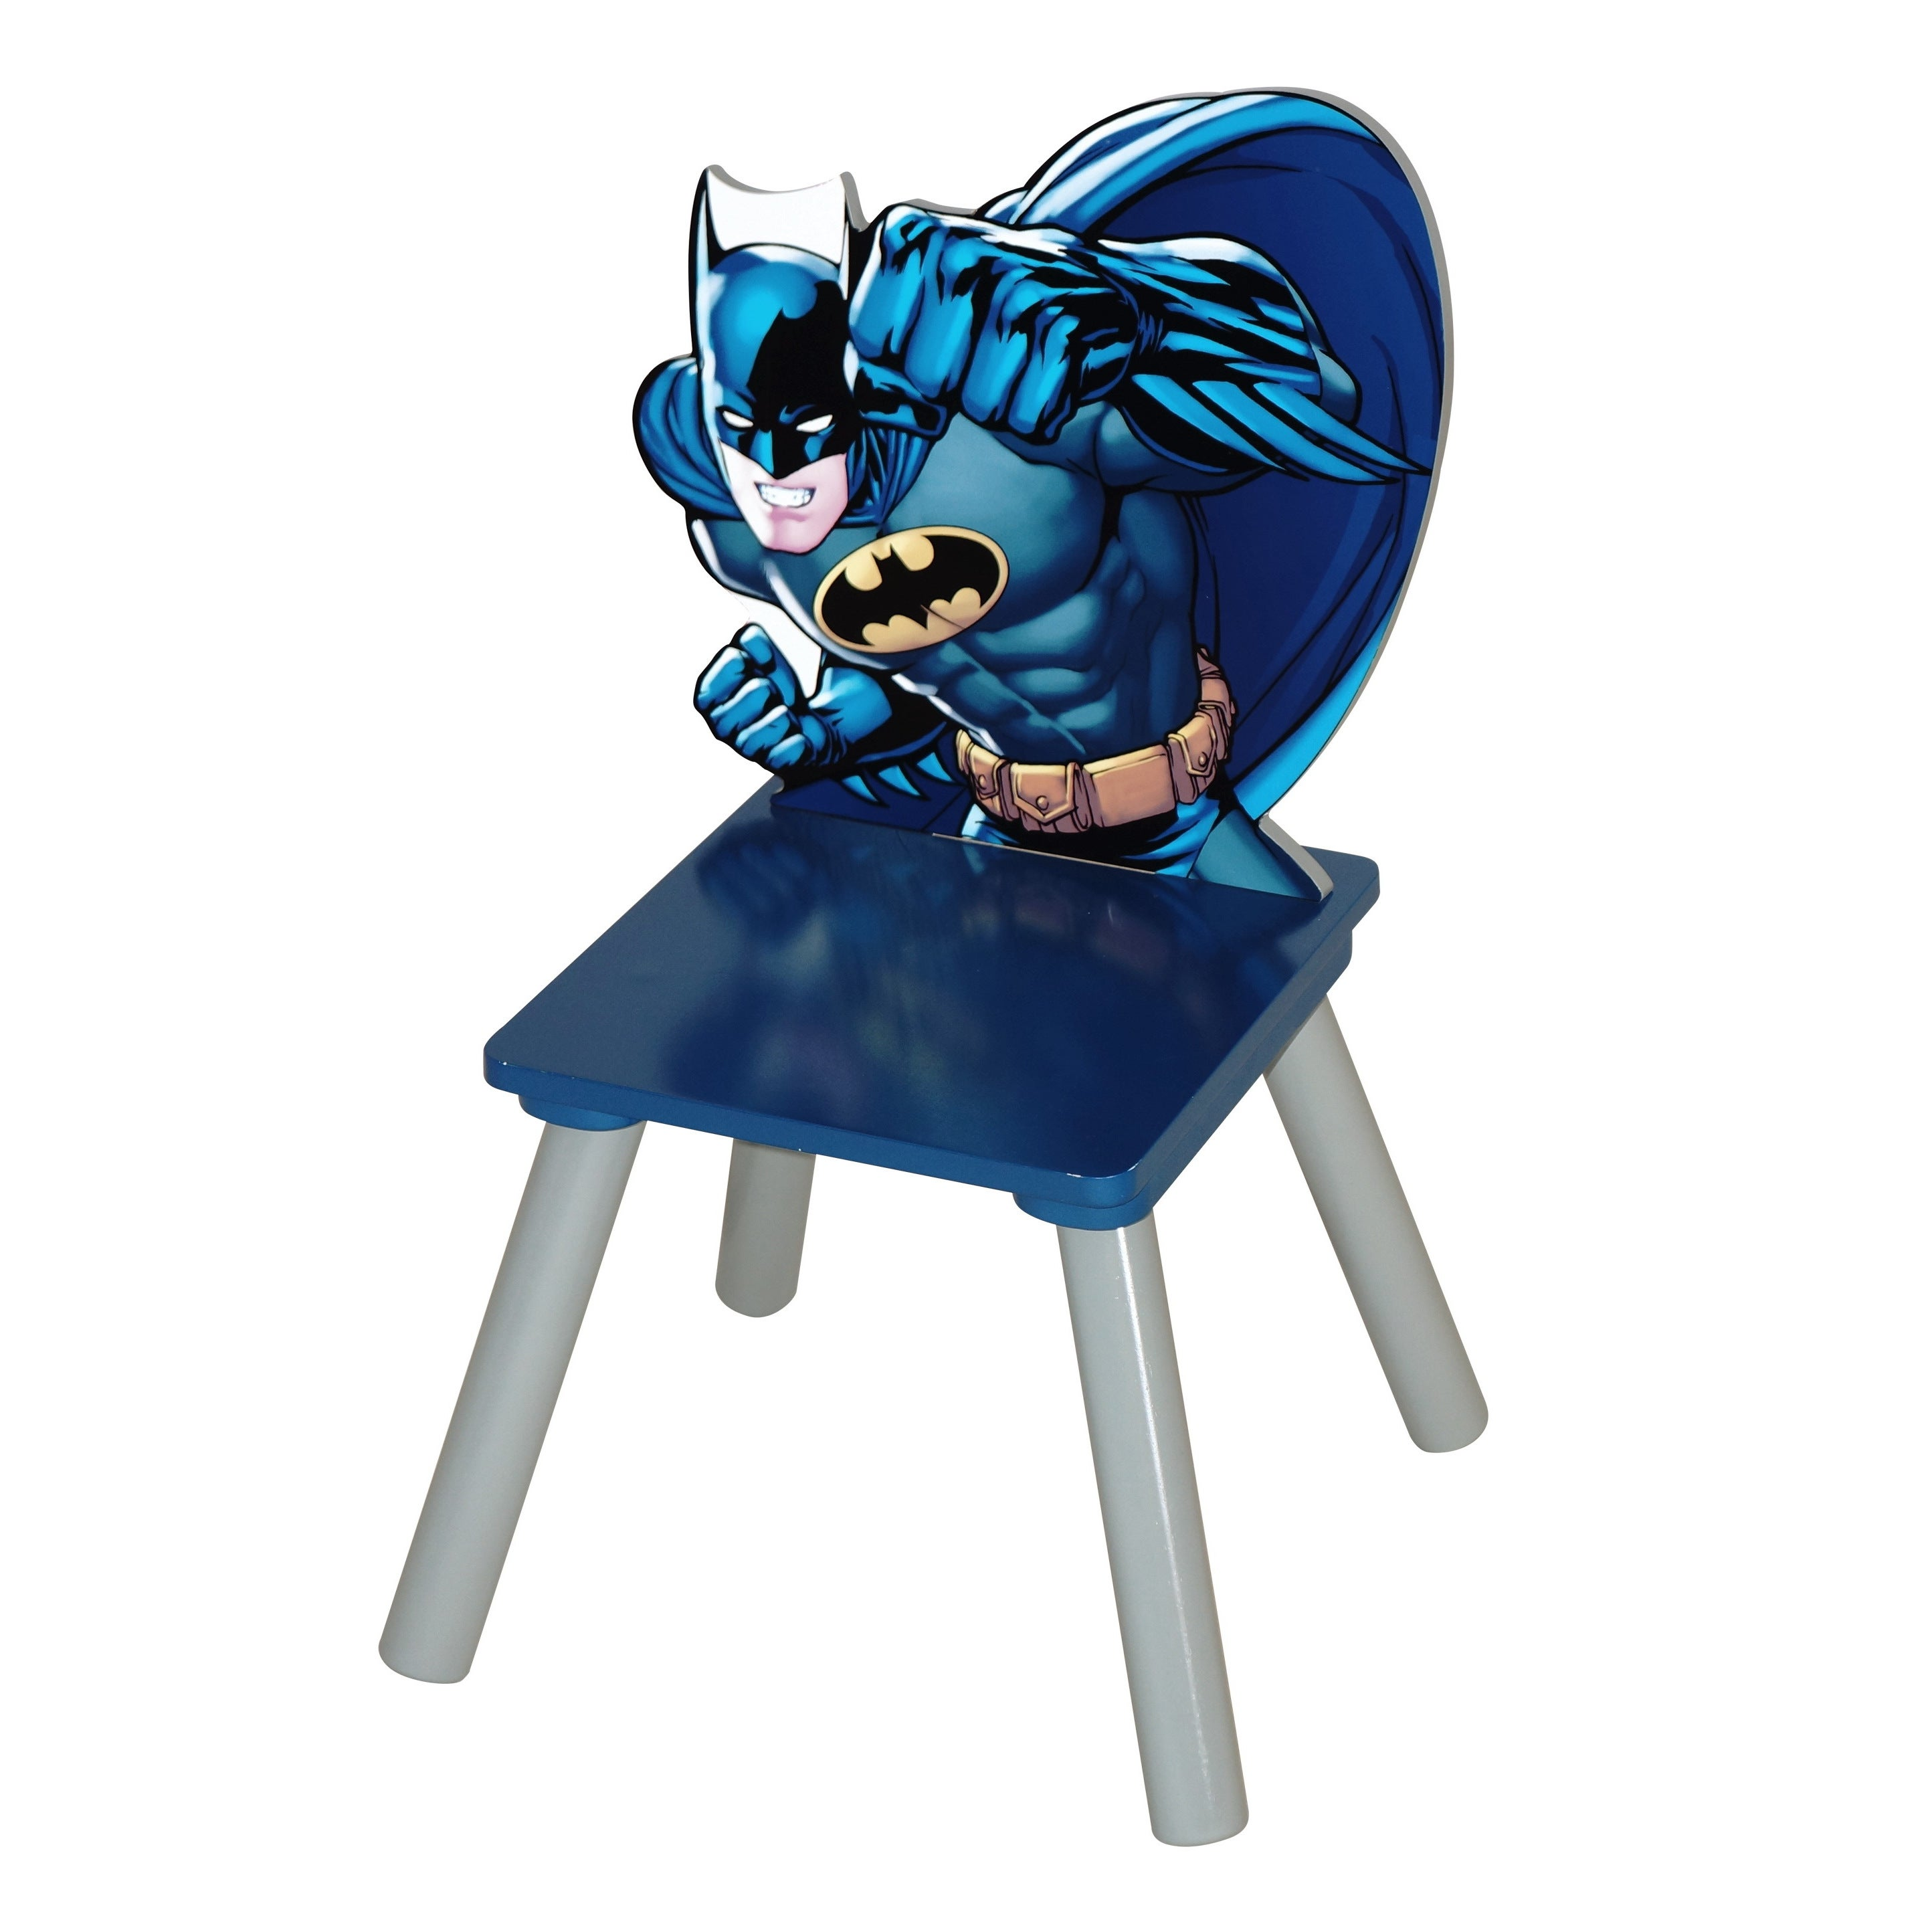 O'Kids 'Batman' Rubber and MDF Kids' Chair (Batman), Black